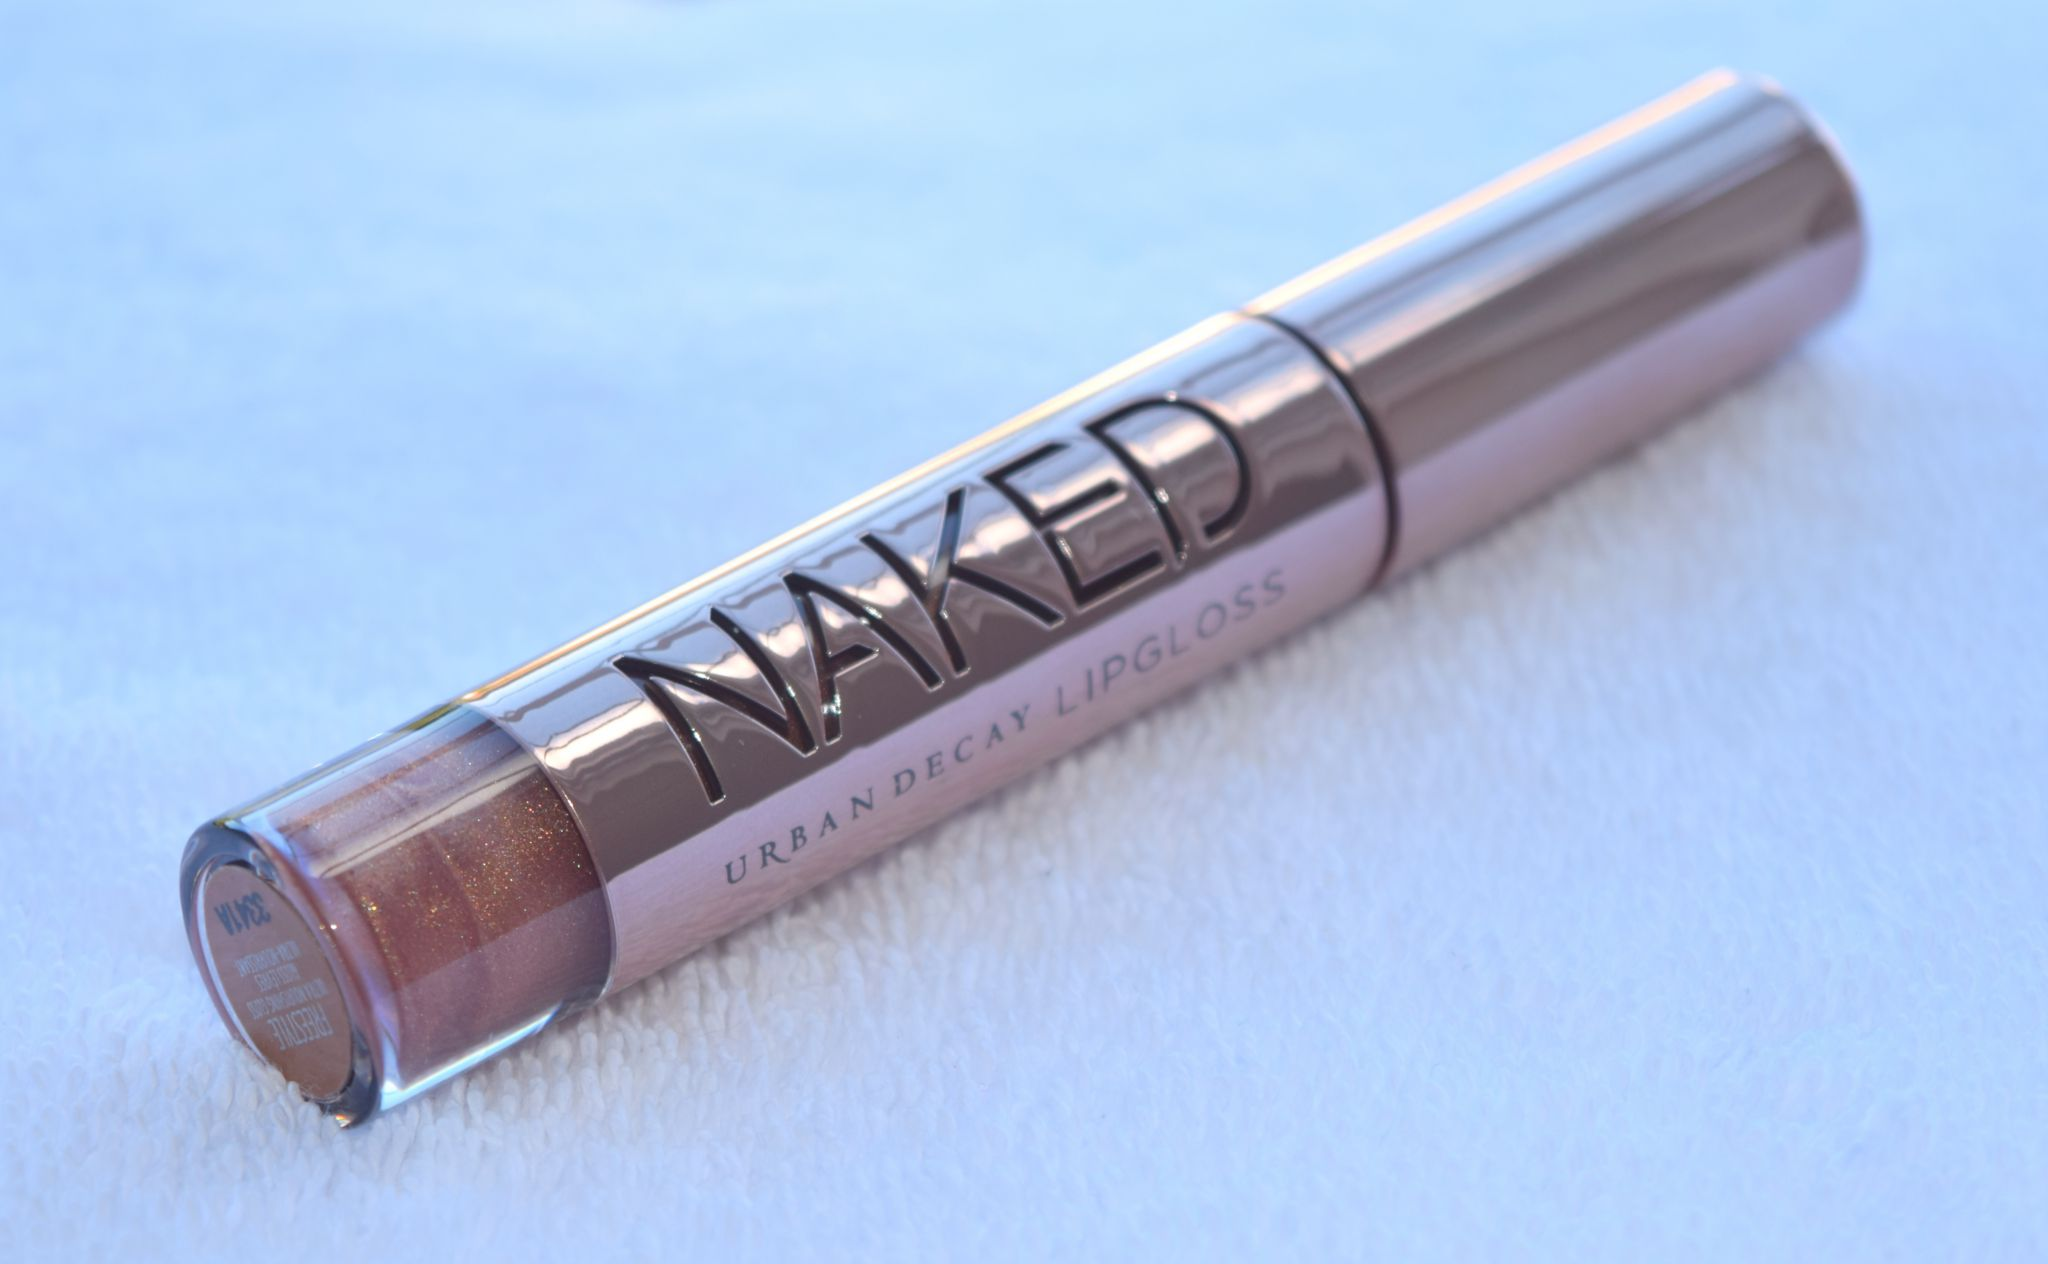 Urban Decay Naked Lipgloss - Freestyle